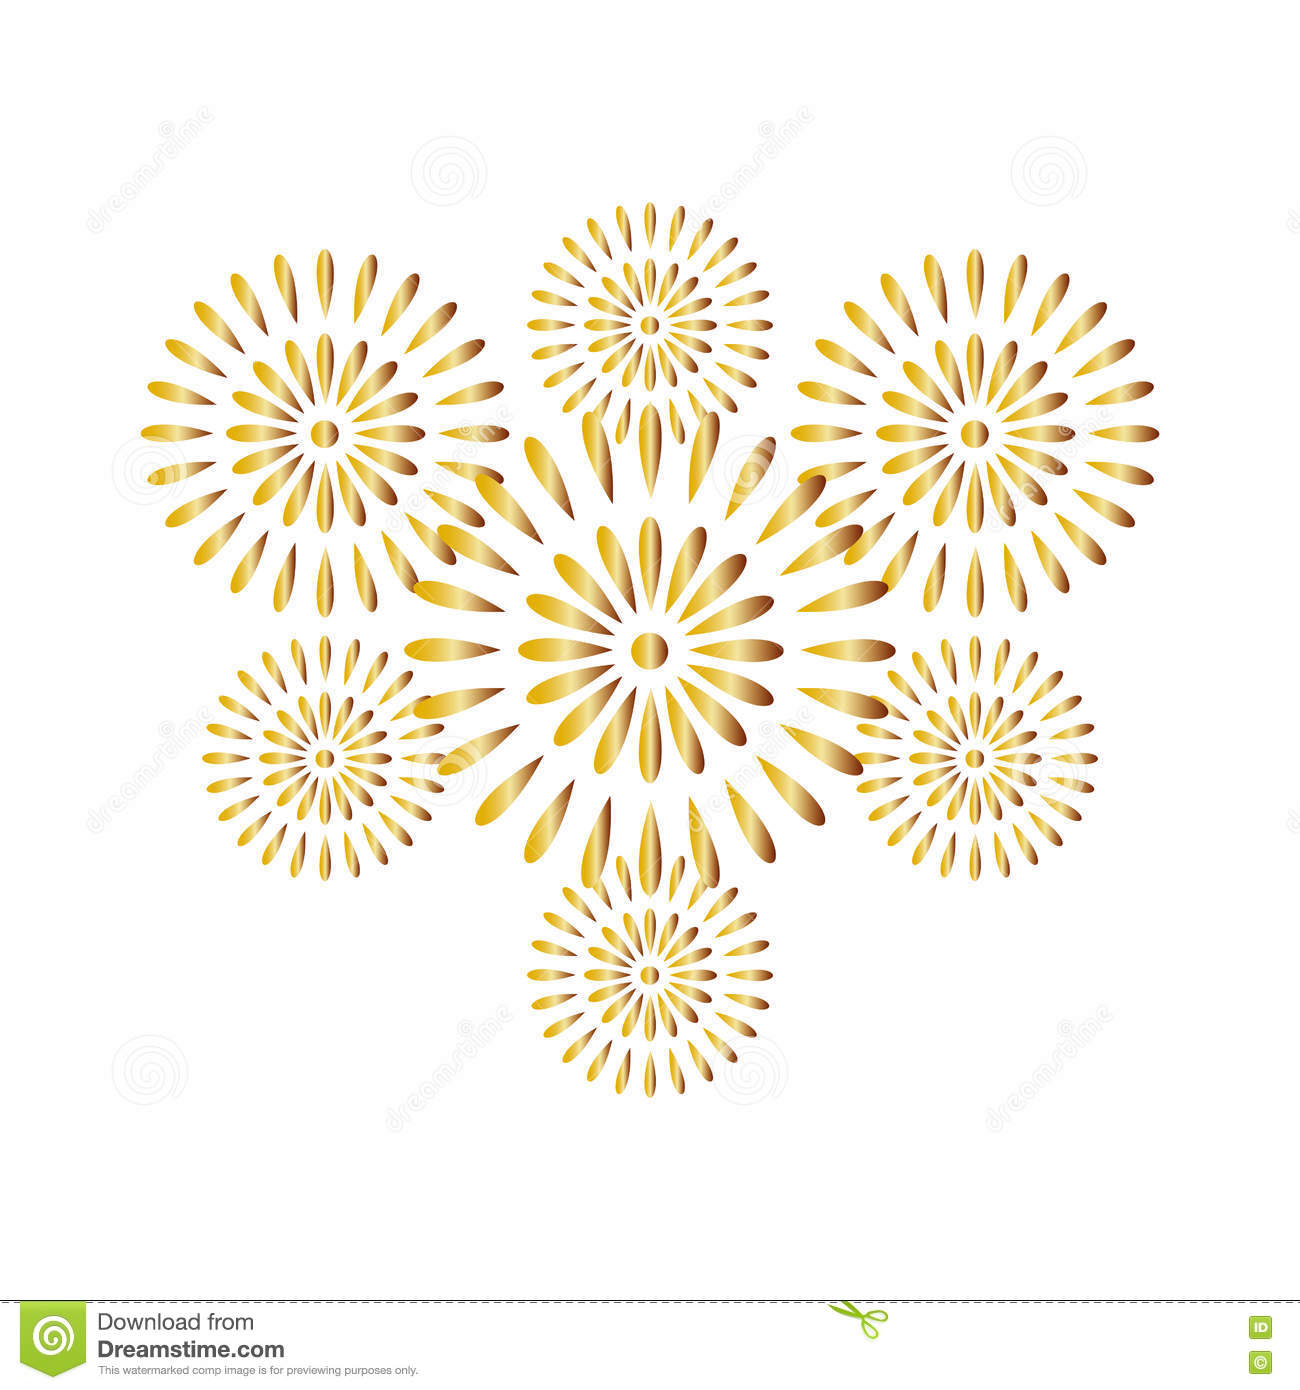 fireworks gold isolated on white background beautiful design for new year anniversary celebration and festival